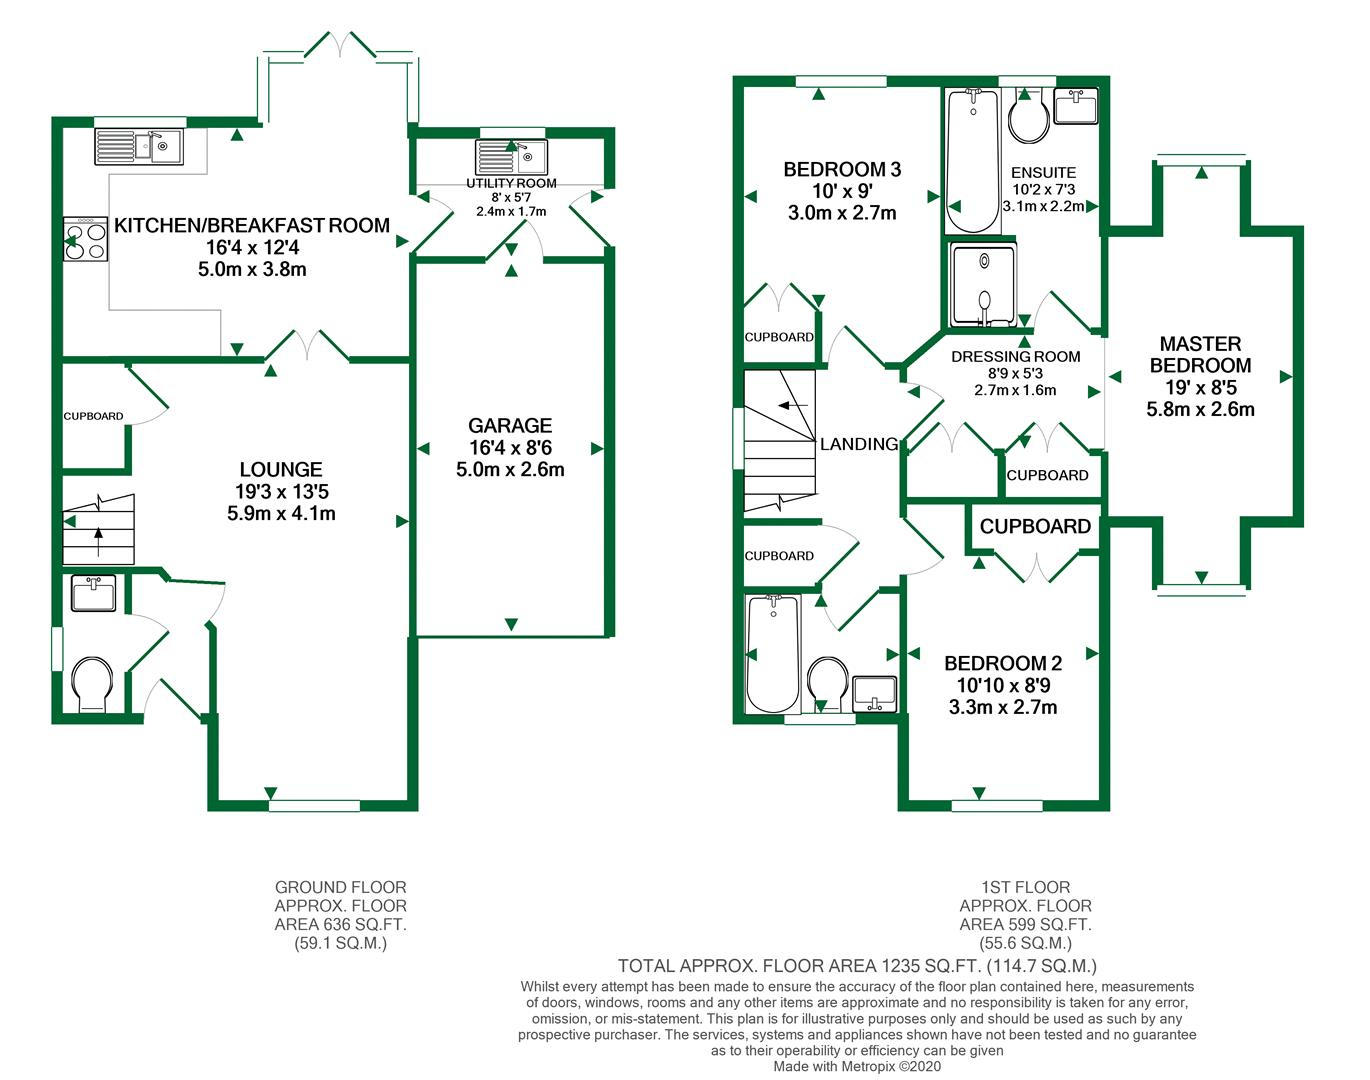 Floorplans For Pipistrelle Way, Charvil, Reading